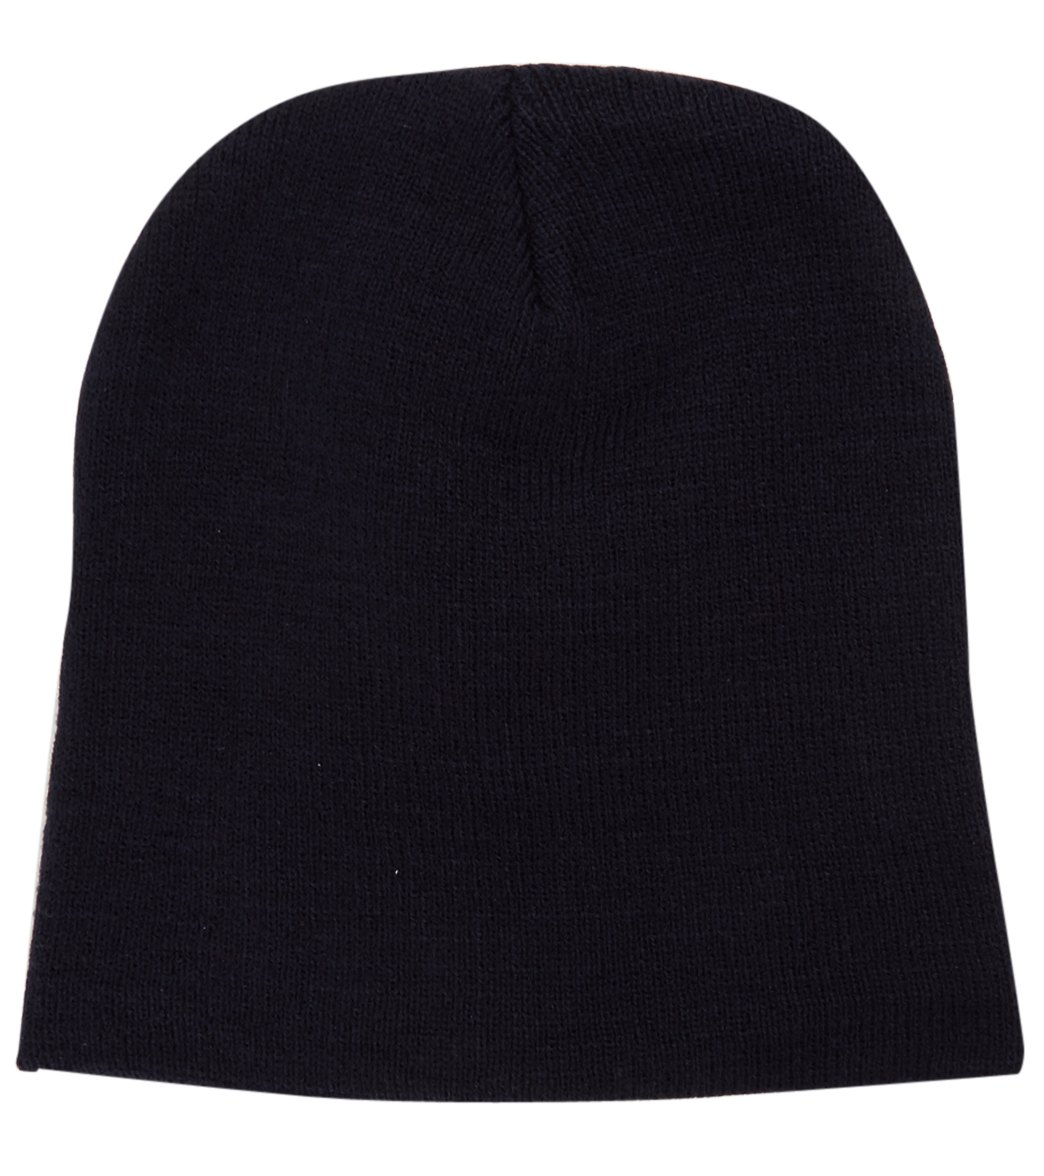 ce6717ee3 USA Swimming Knit Beanie Hat